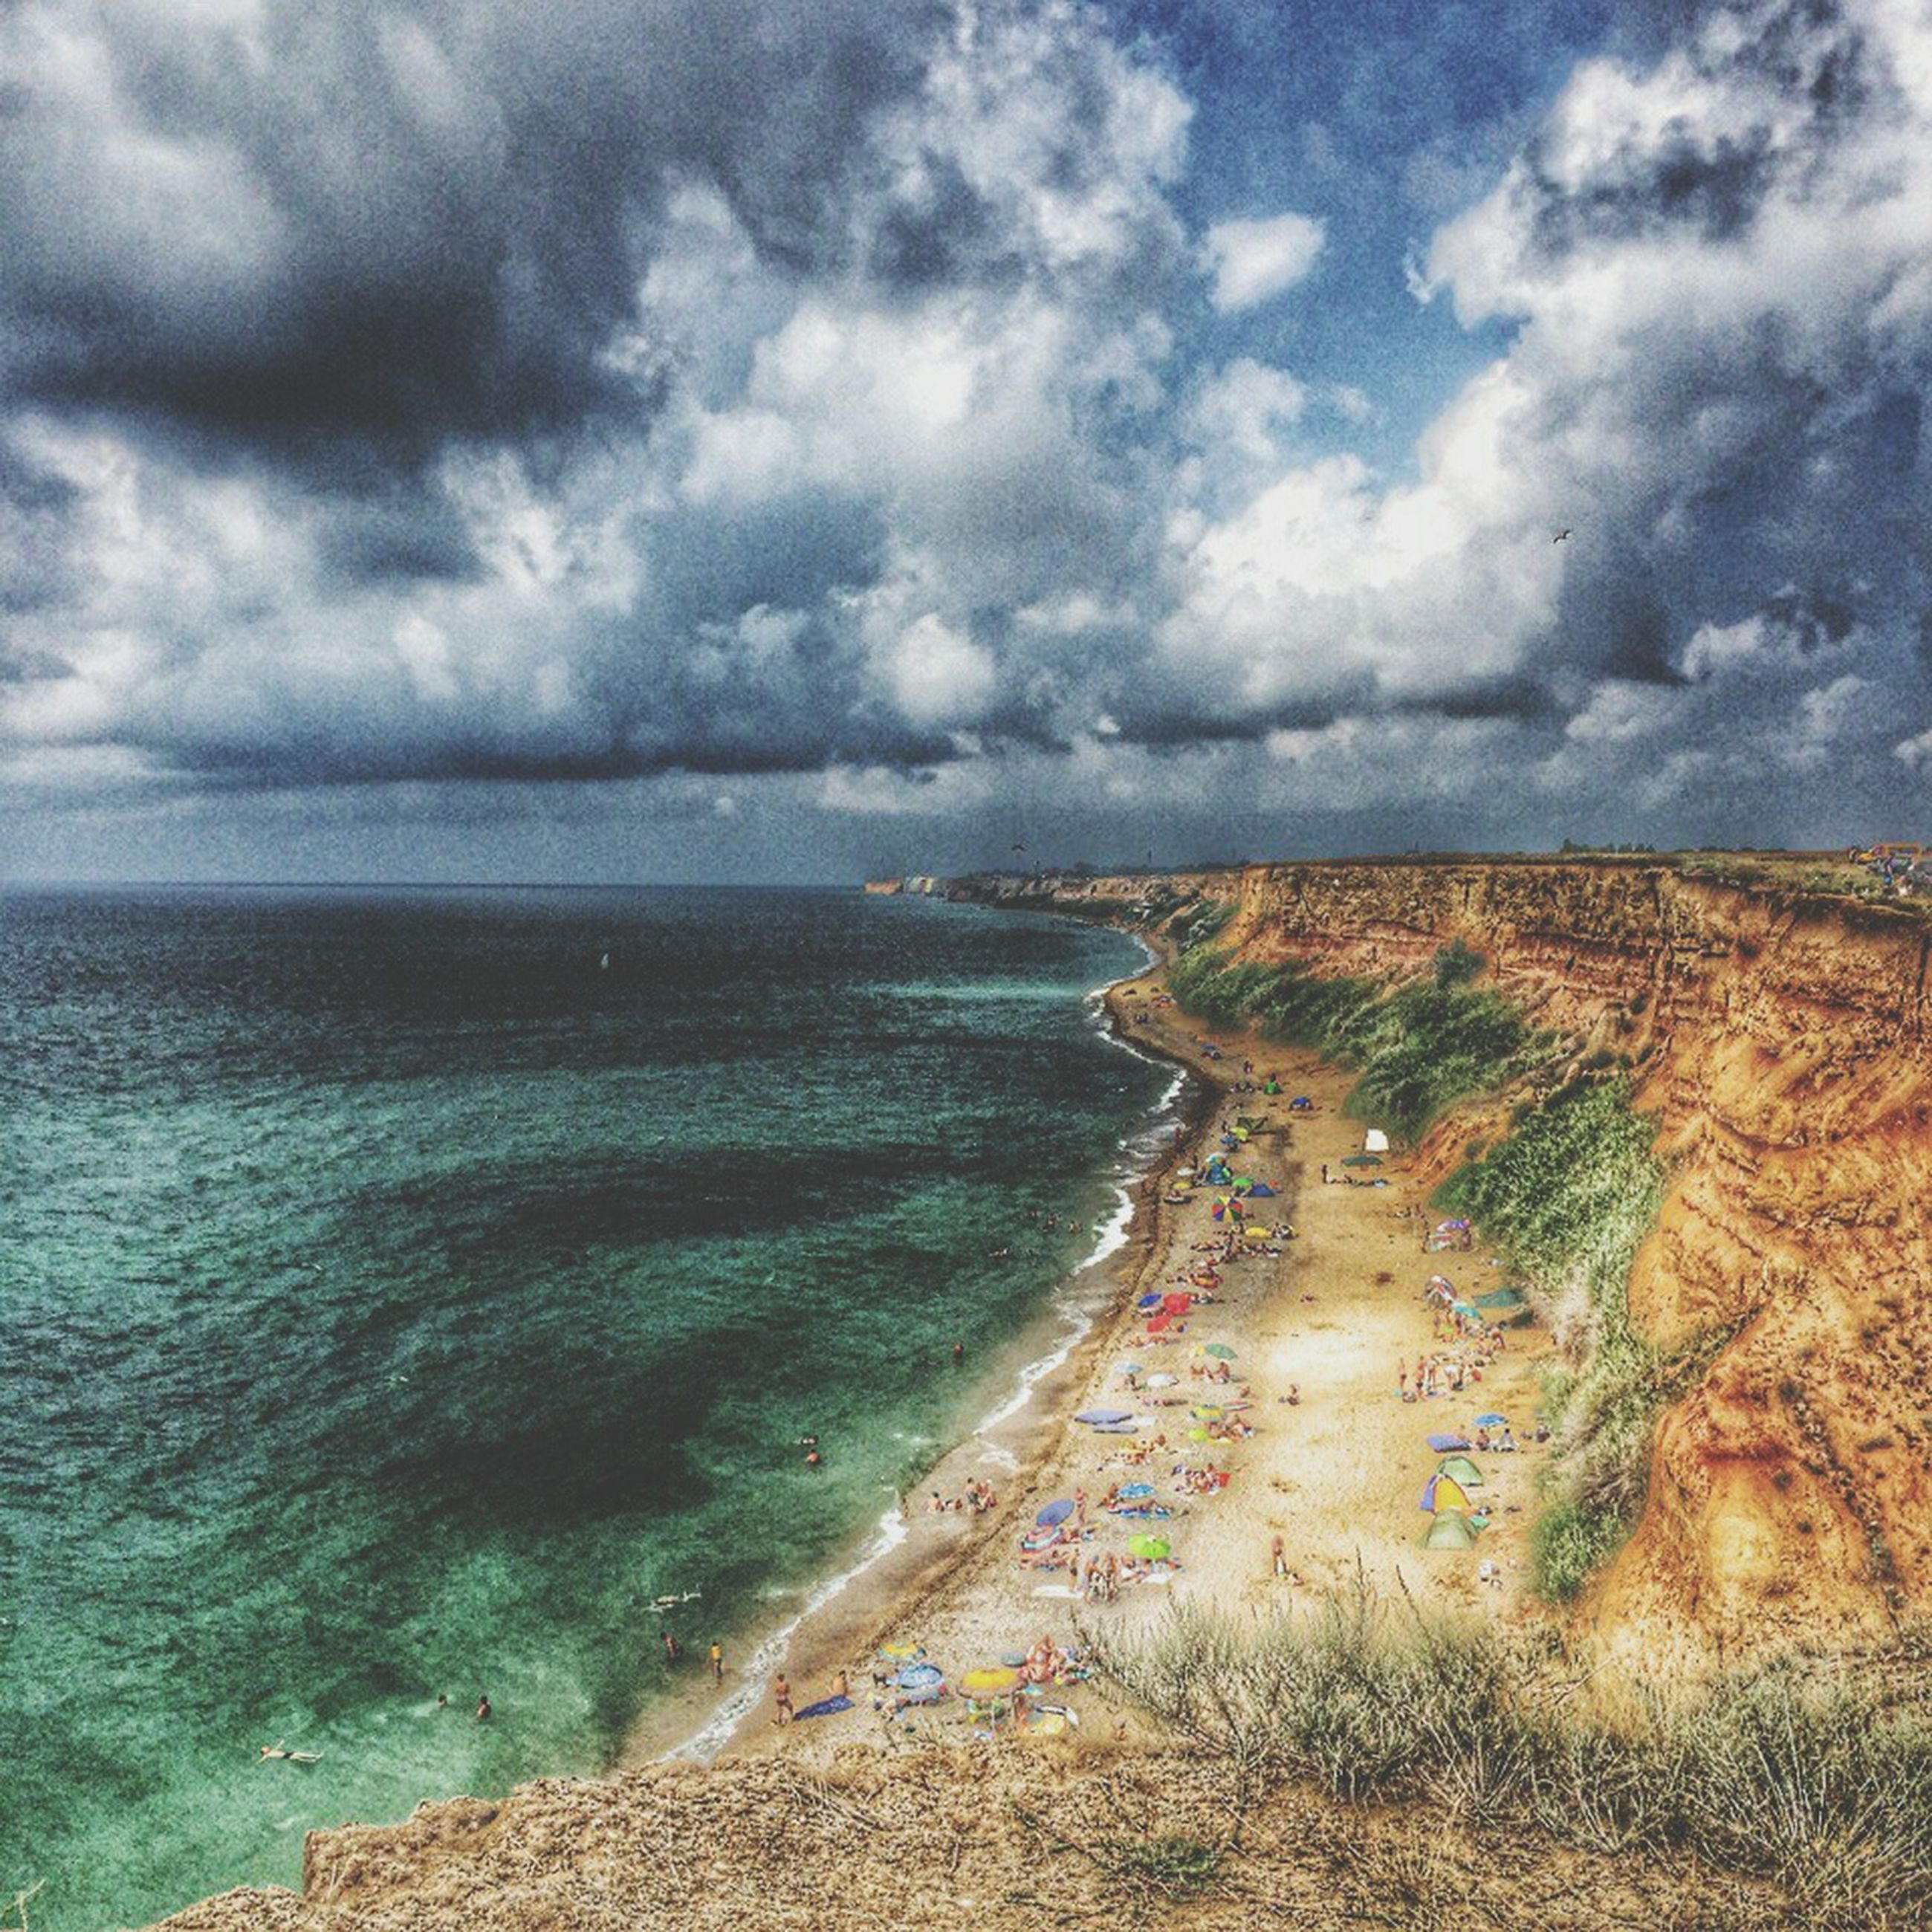 sea, water, horizon over water, sky, beach, scenics, cloud - sky, beauty in nature, tranquil scene, tranquility, shore, cloudy, nature, coastline, sand, cloud, idyllic, wave, surf, outdoors